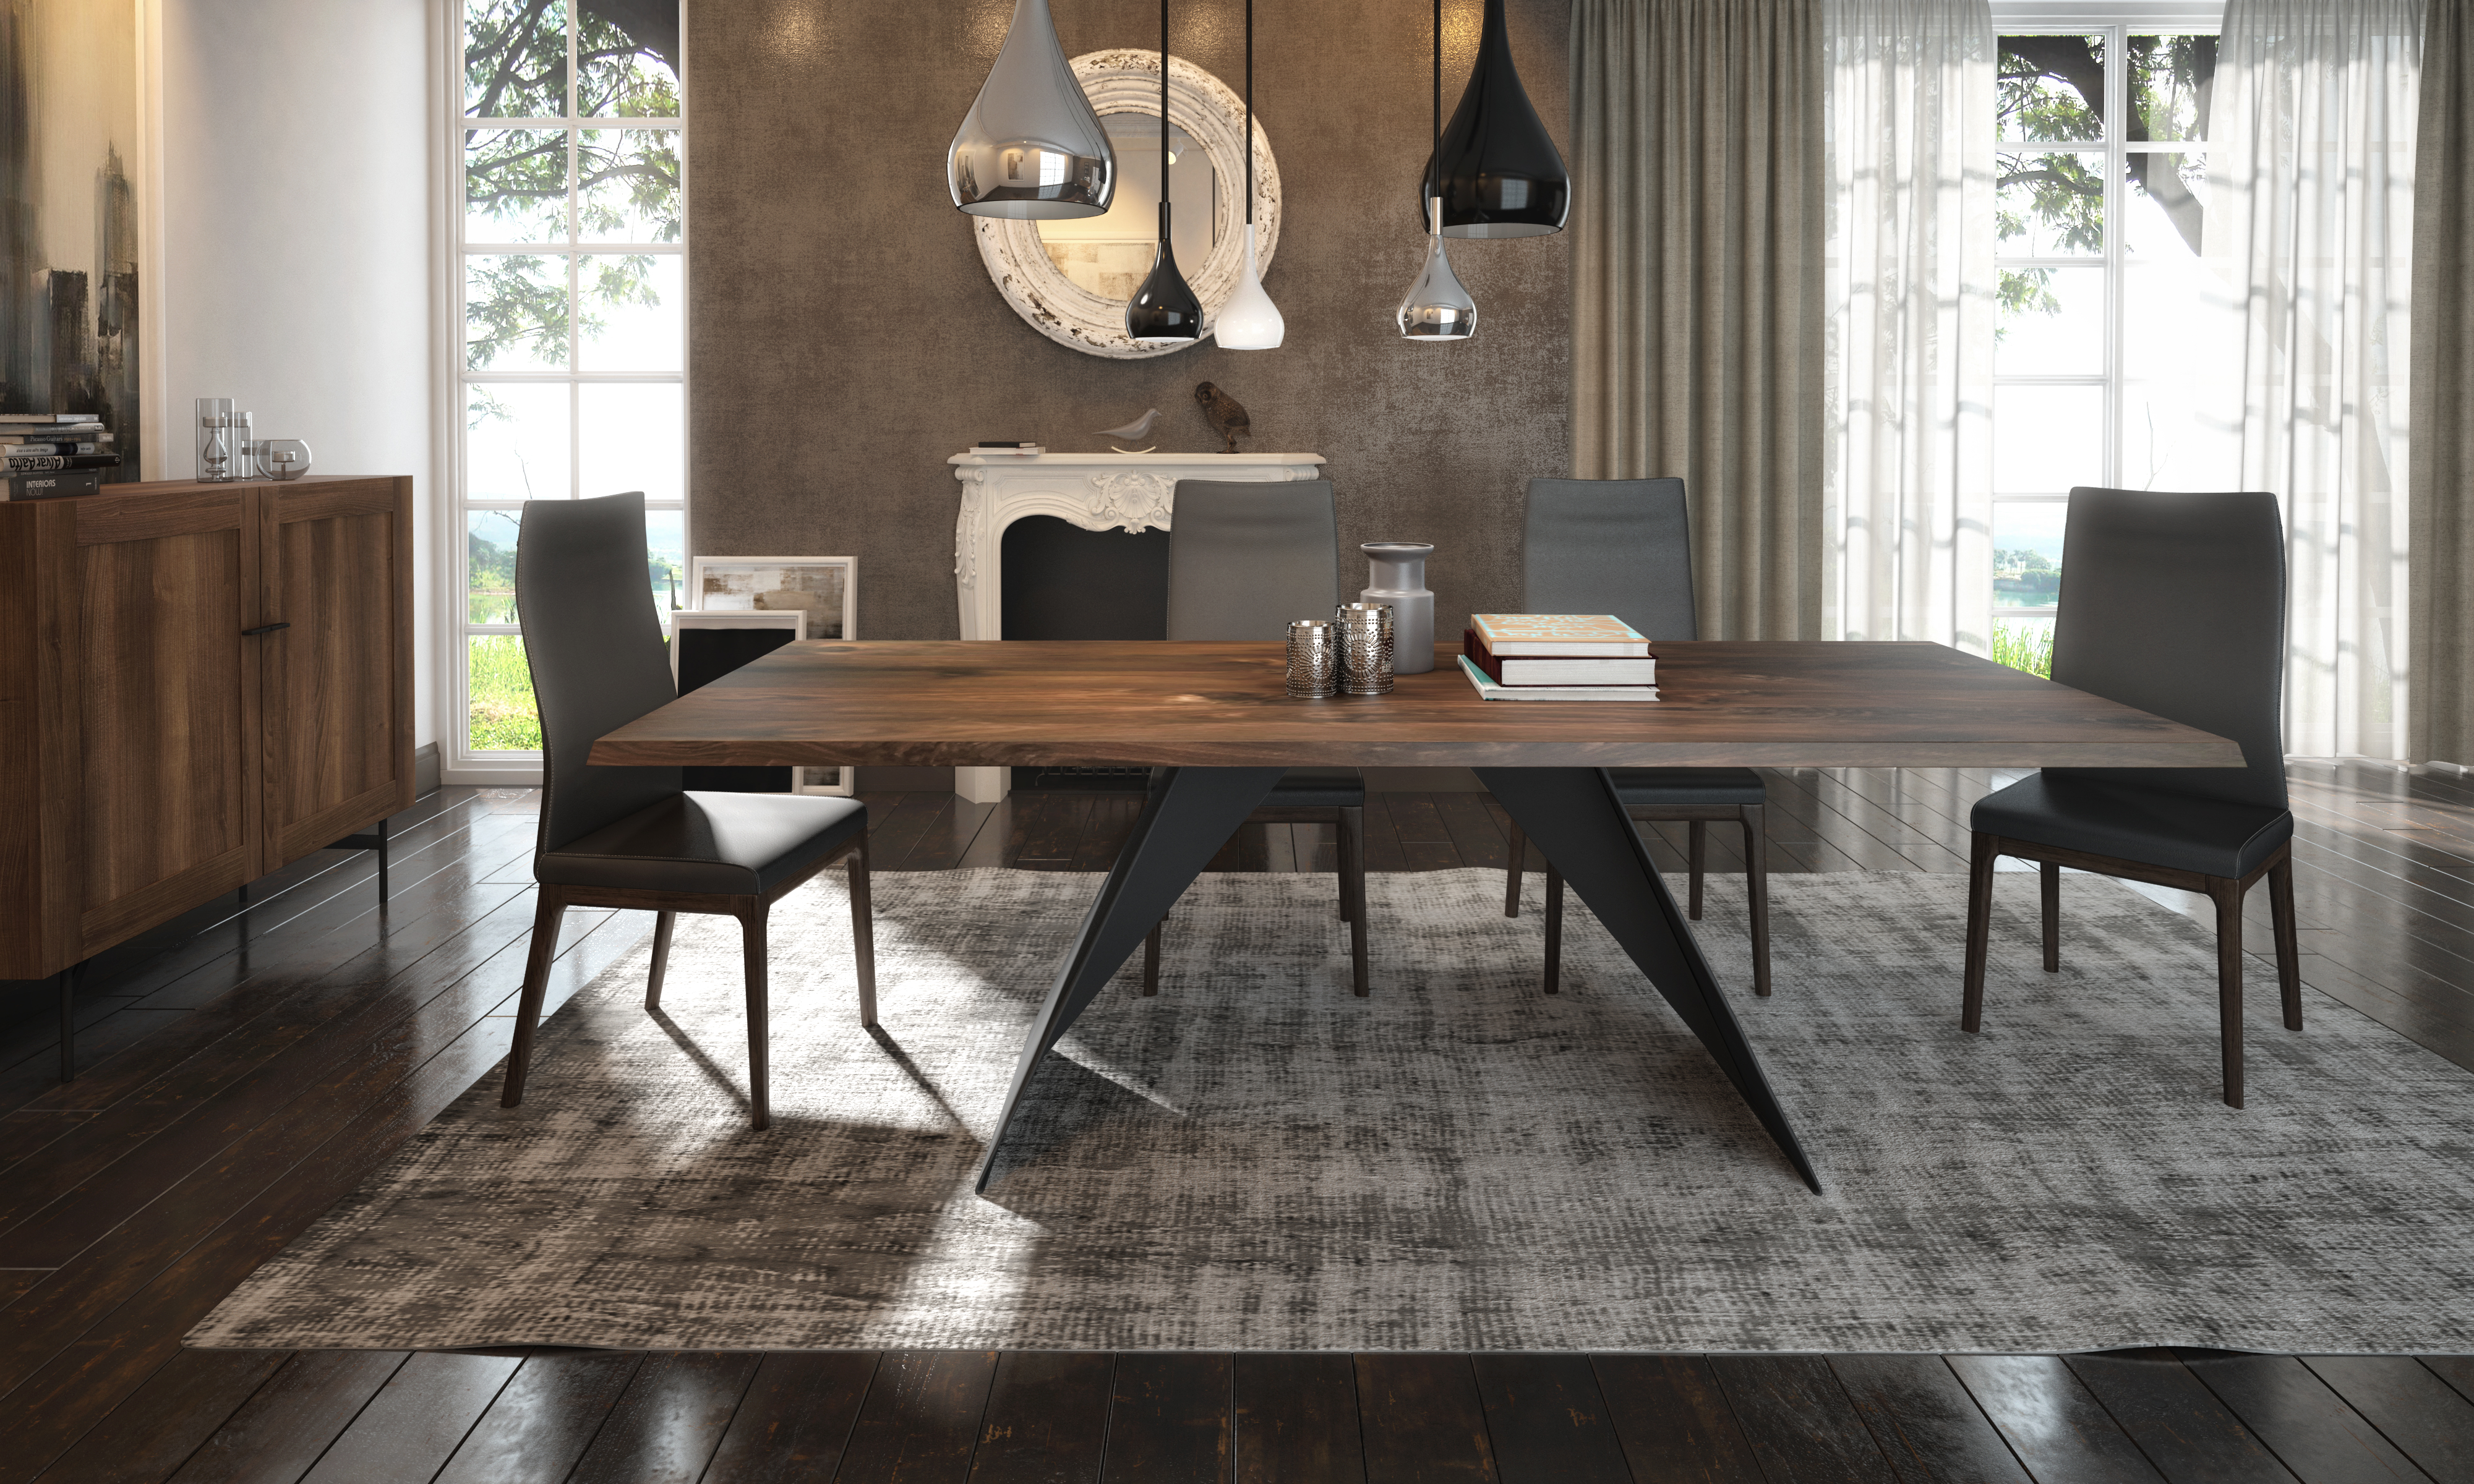 HUGO TABLE + AMY CHAIR + HARMONY